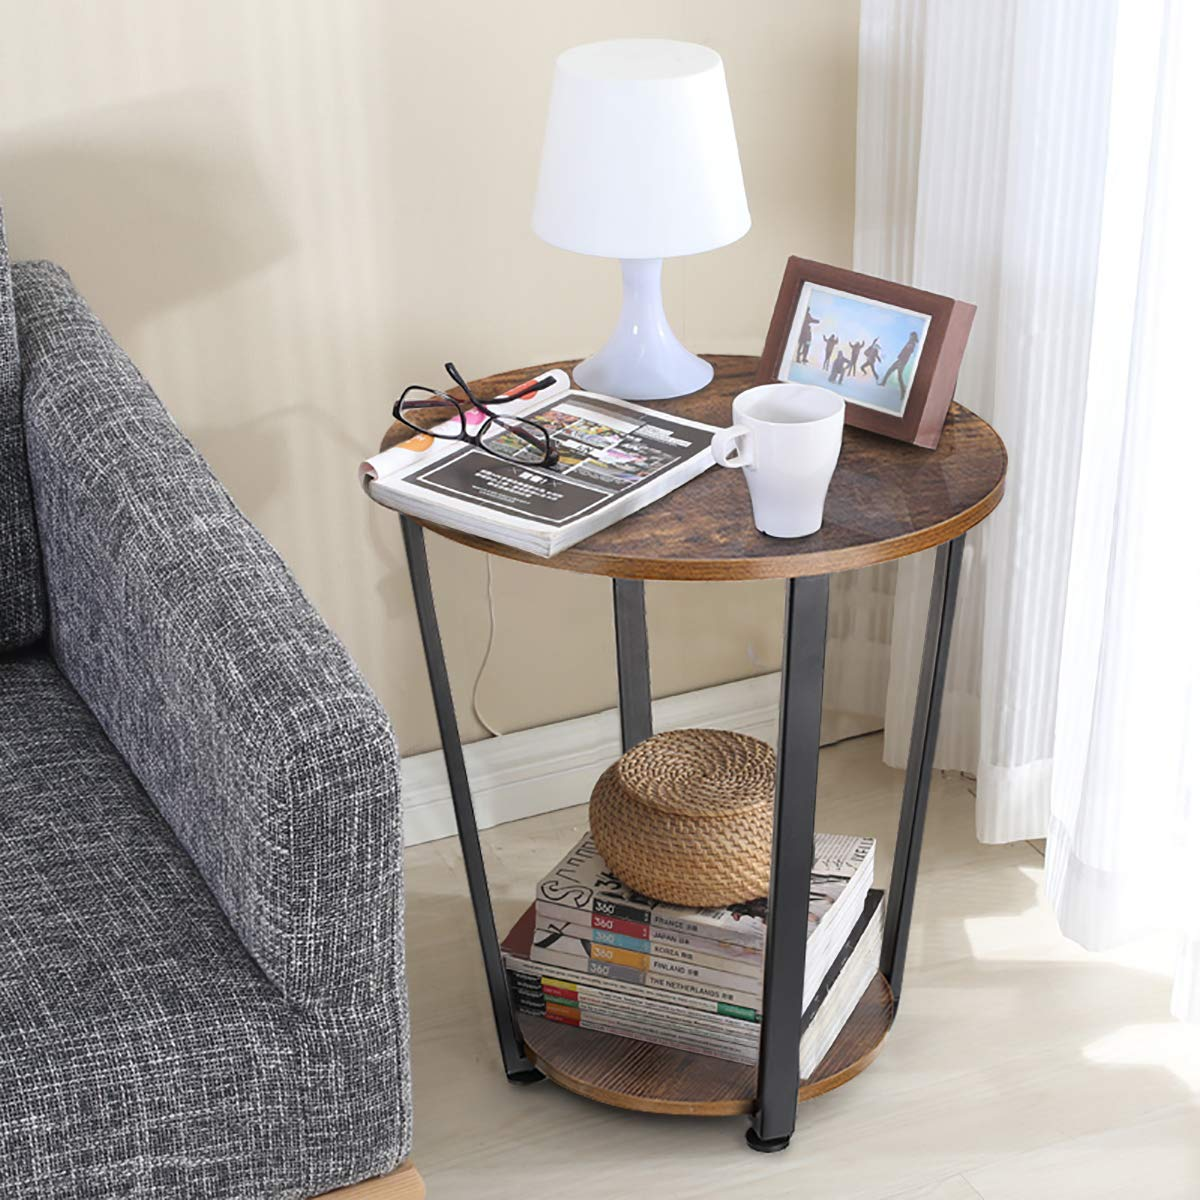 Round Side End Tables 2 Tier Bedside, Accent Tables For Living Room